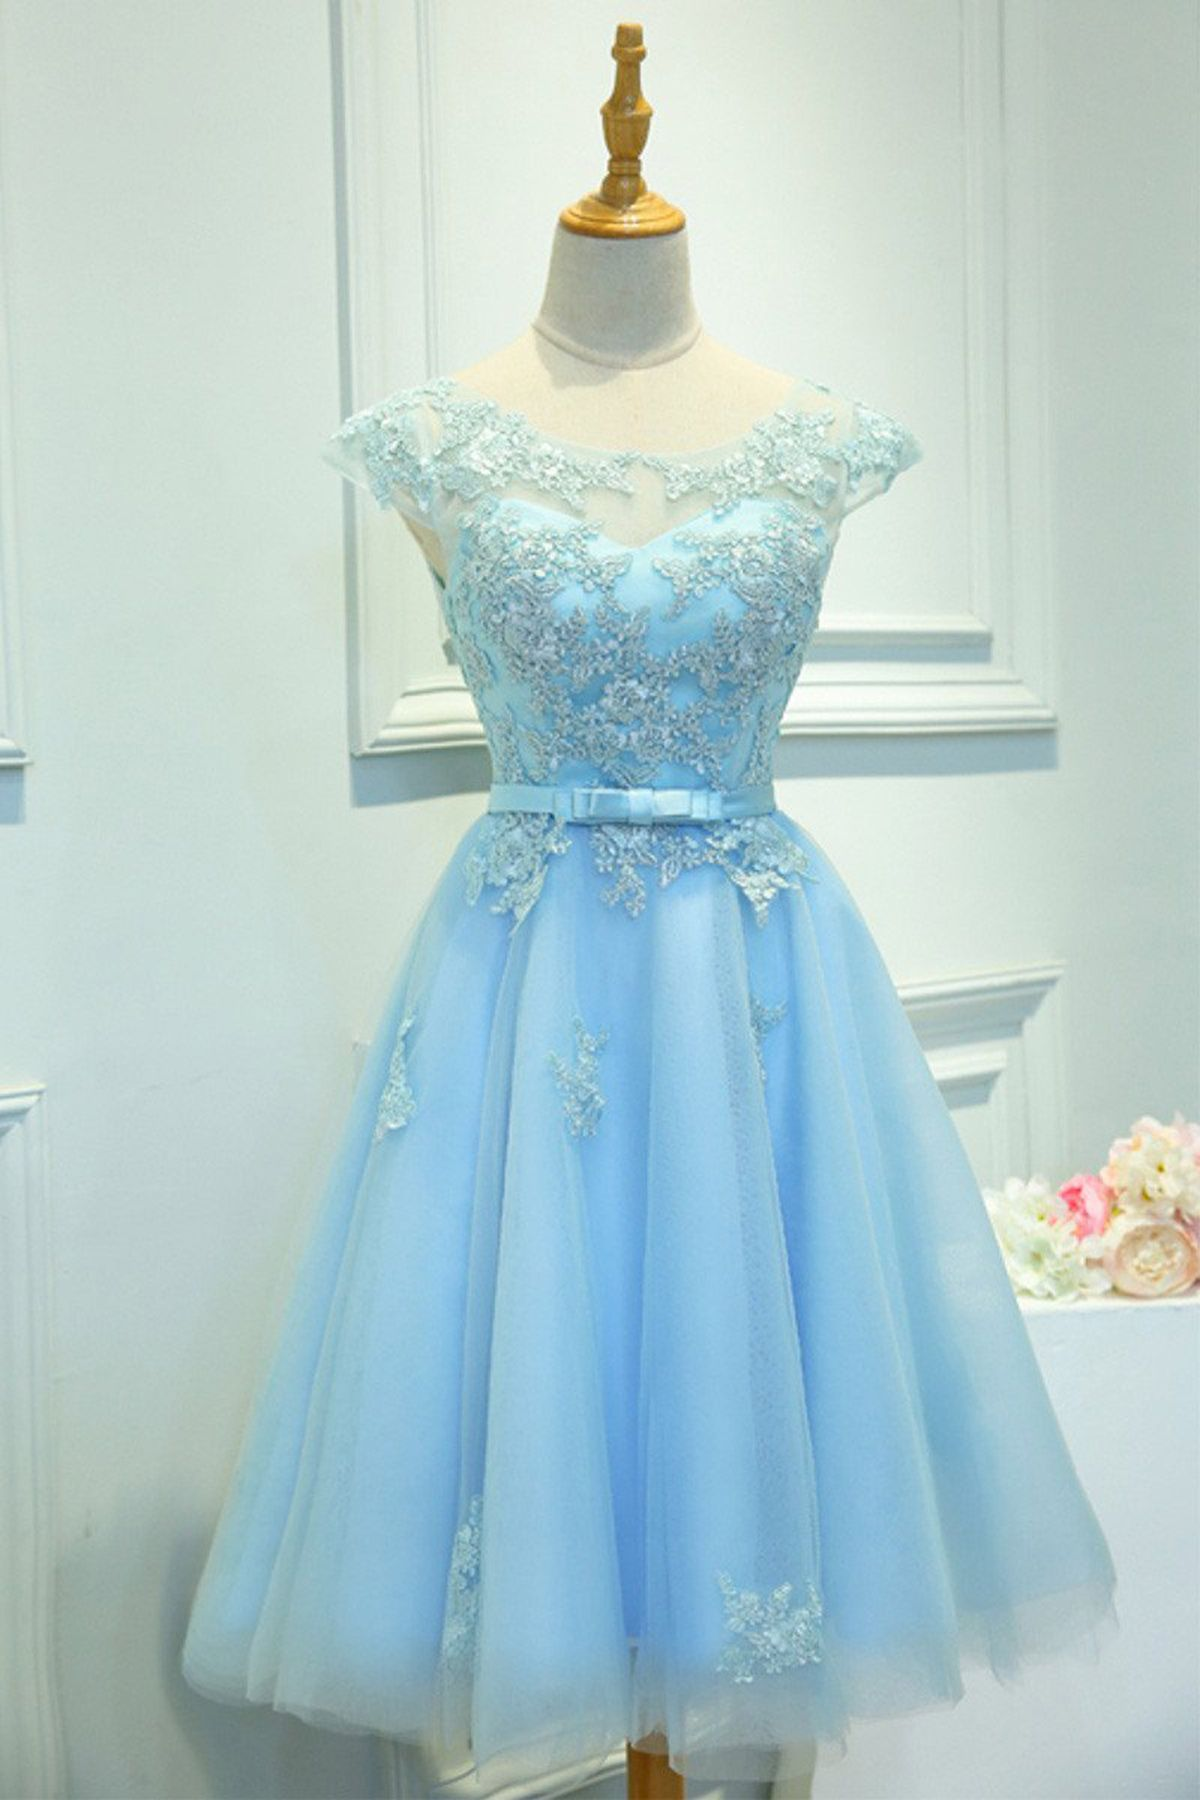 542c6c88a1c ... dresses in affordable price. Cute ice blue lace short prom dress with  bow